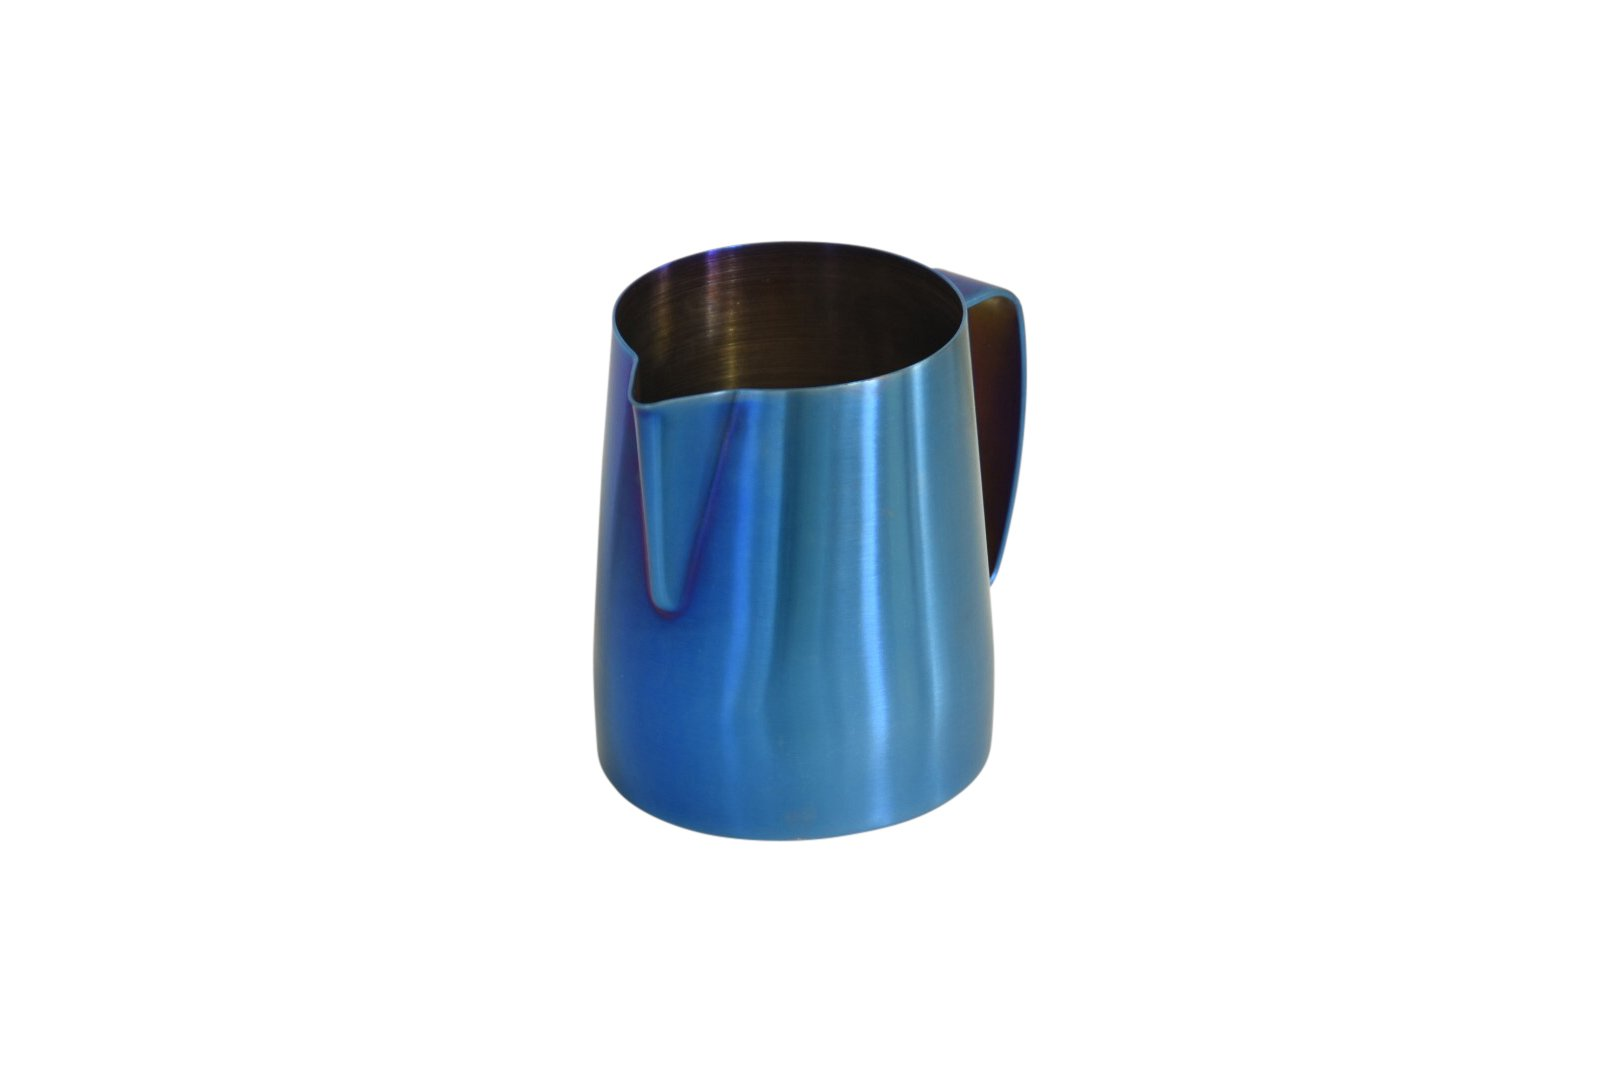 Latte Art | Stainless Steel Premium Milk Frothing Pitcher (Light Blue, 20 oz) by Barista Swag (Image #8)